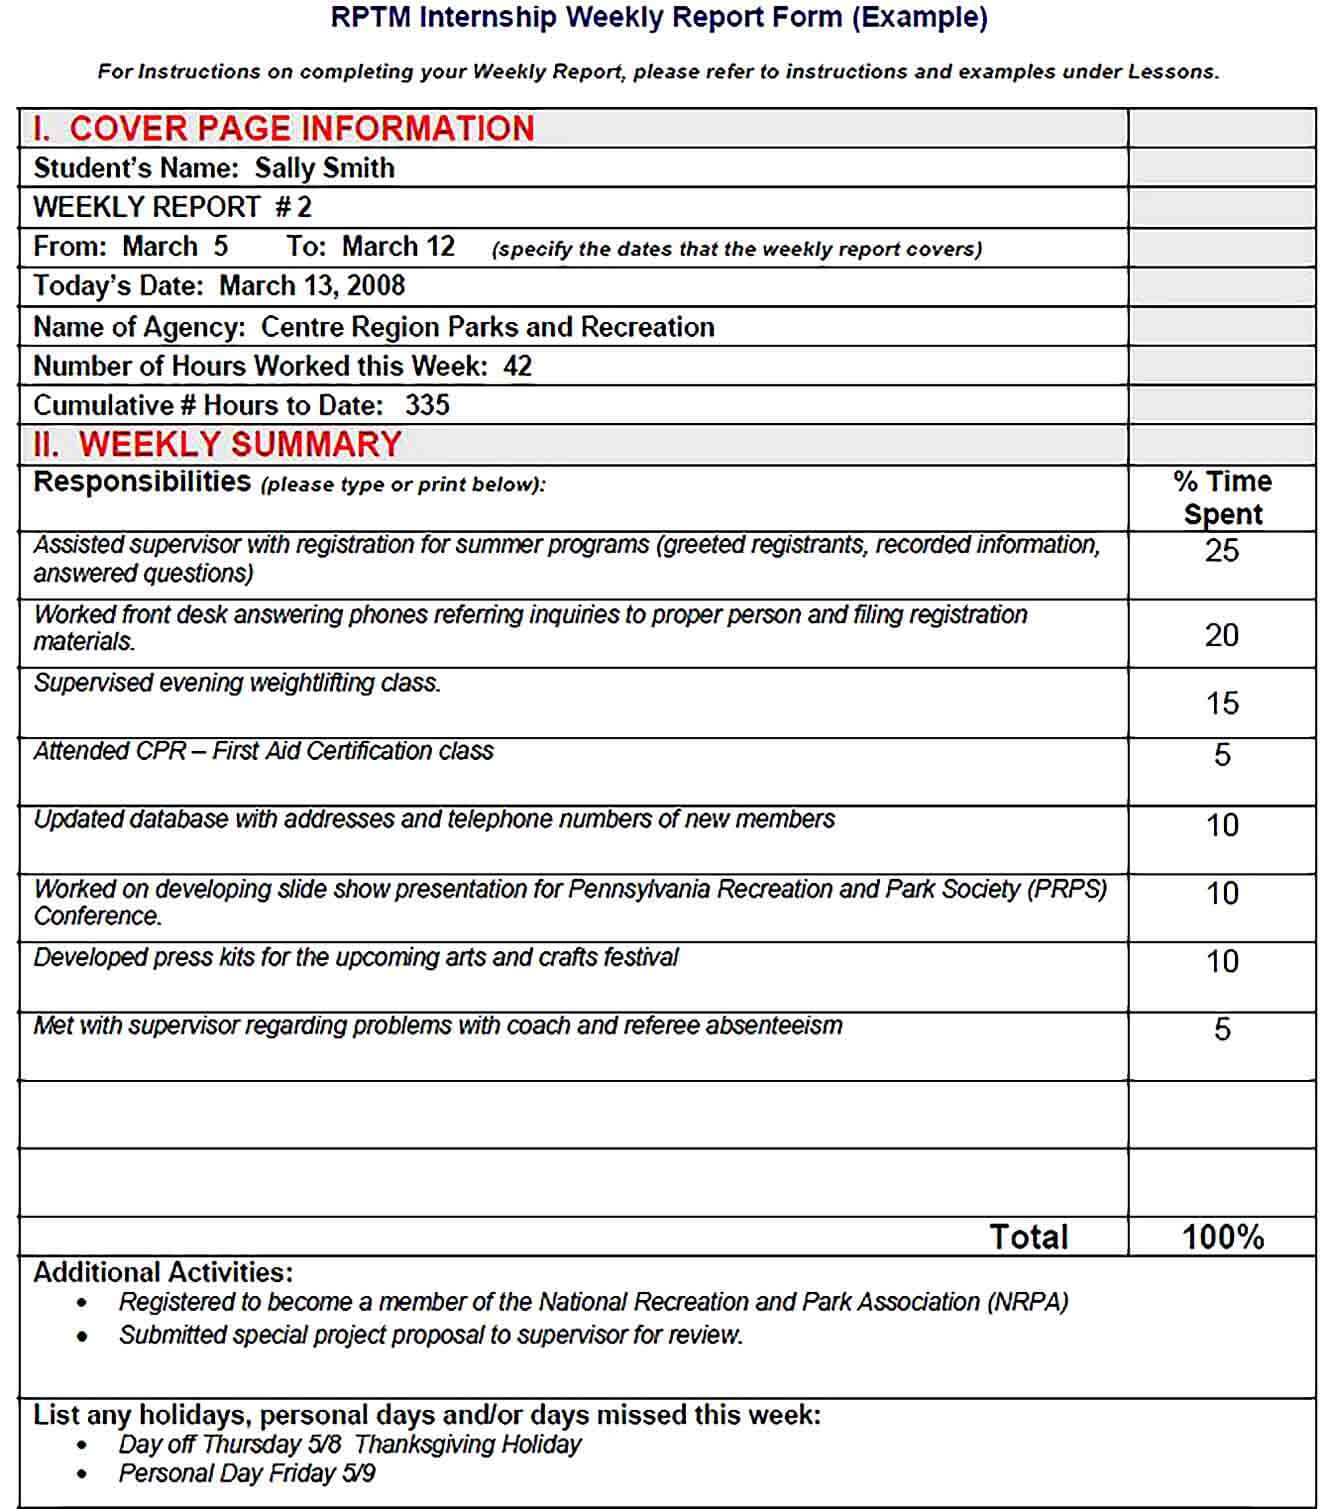 Sample Printable New Weekly Report Form Example